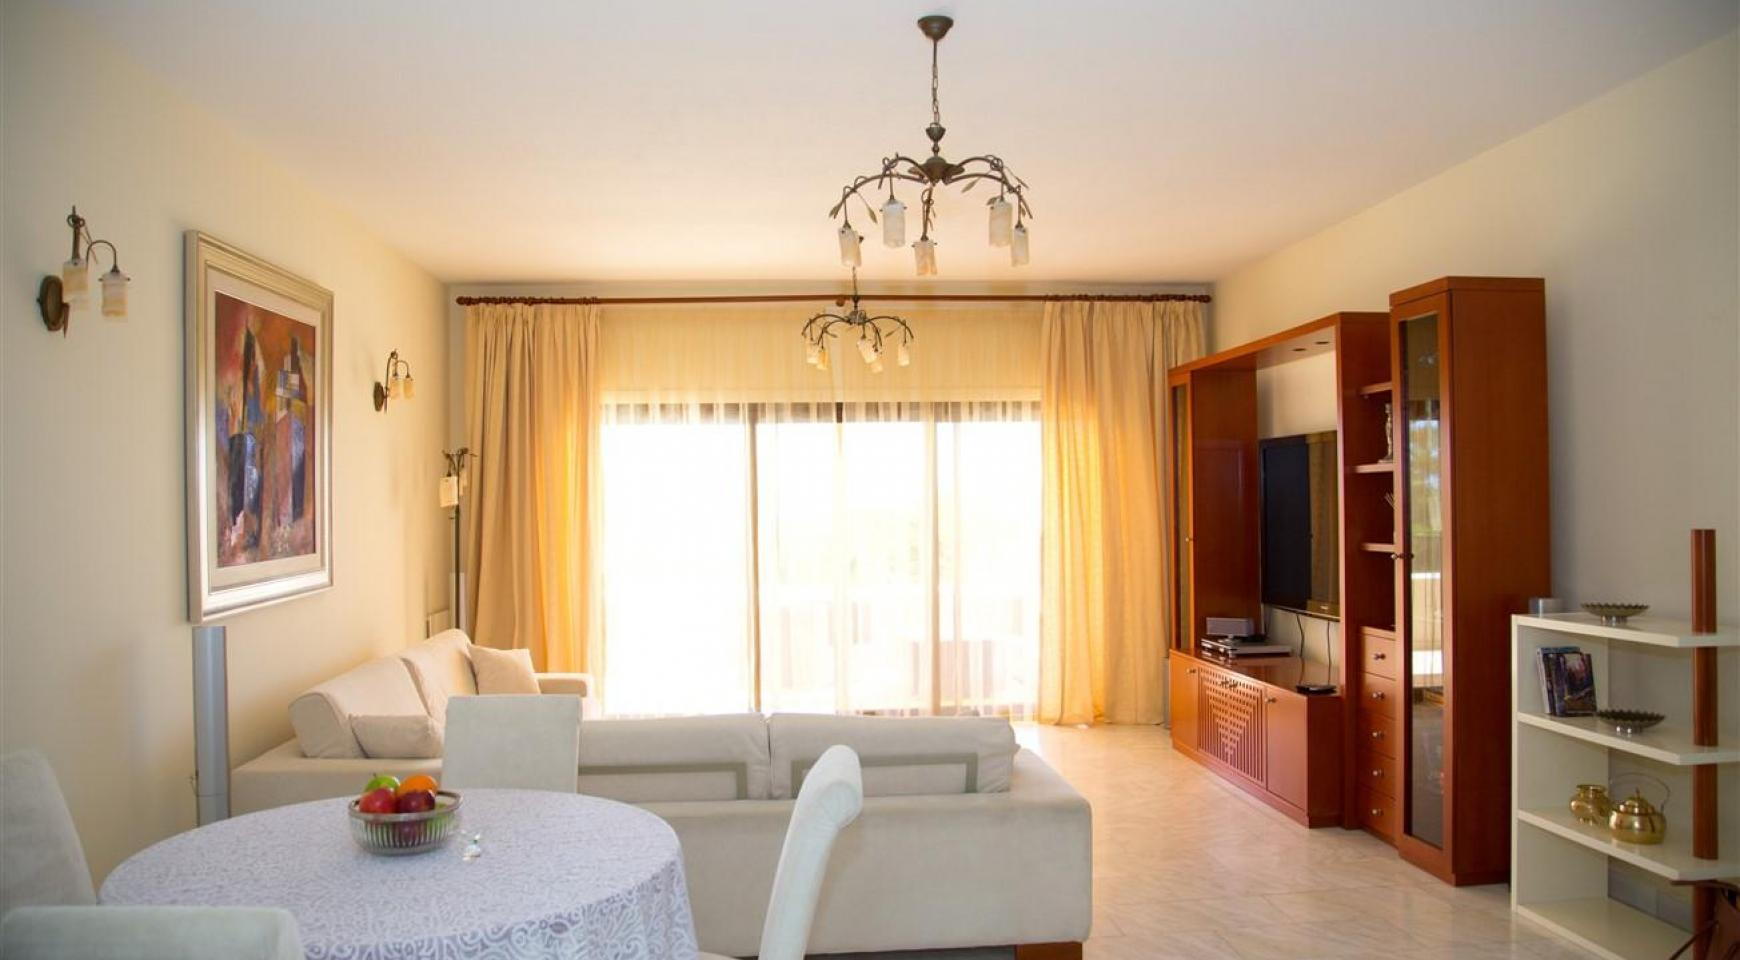 3 Bedroom Apartment in Thera Complex by the Sea - 37